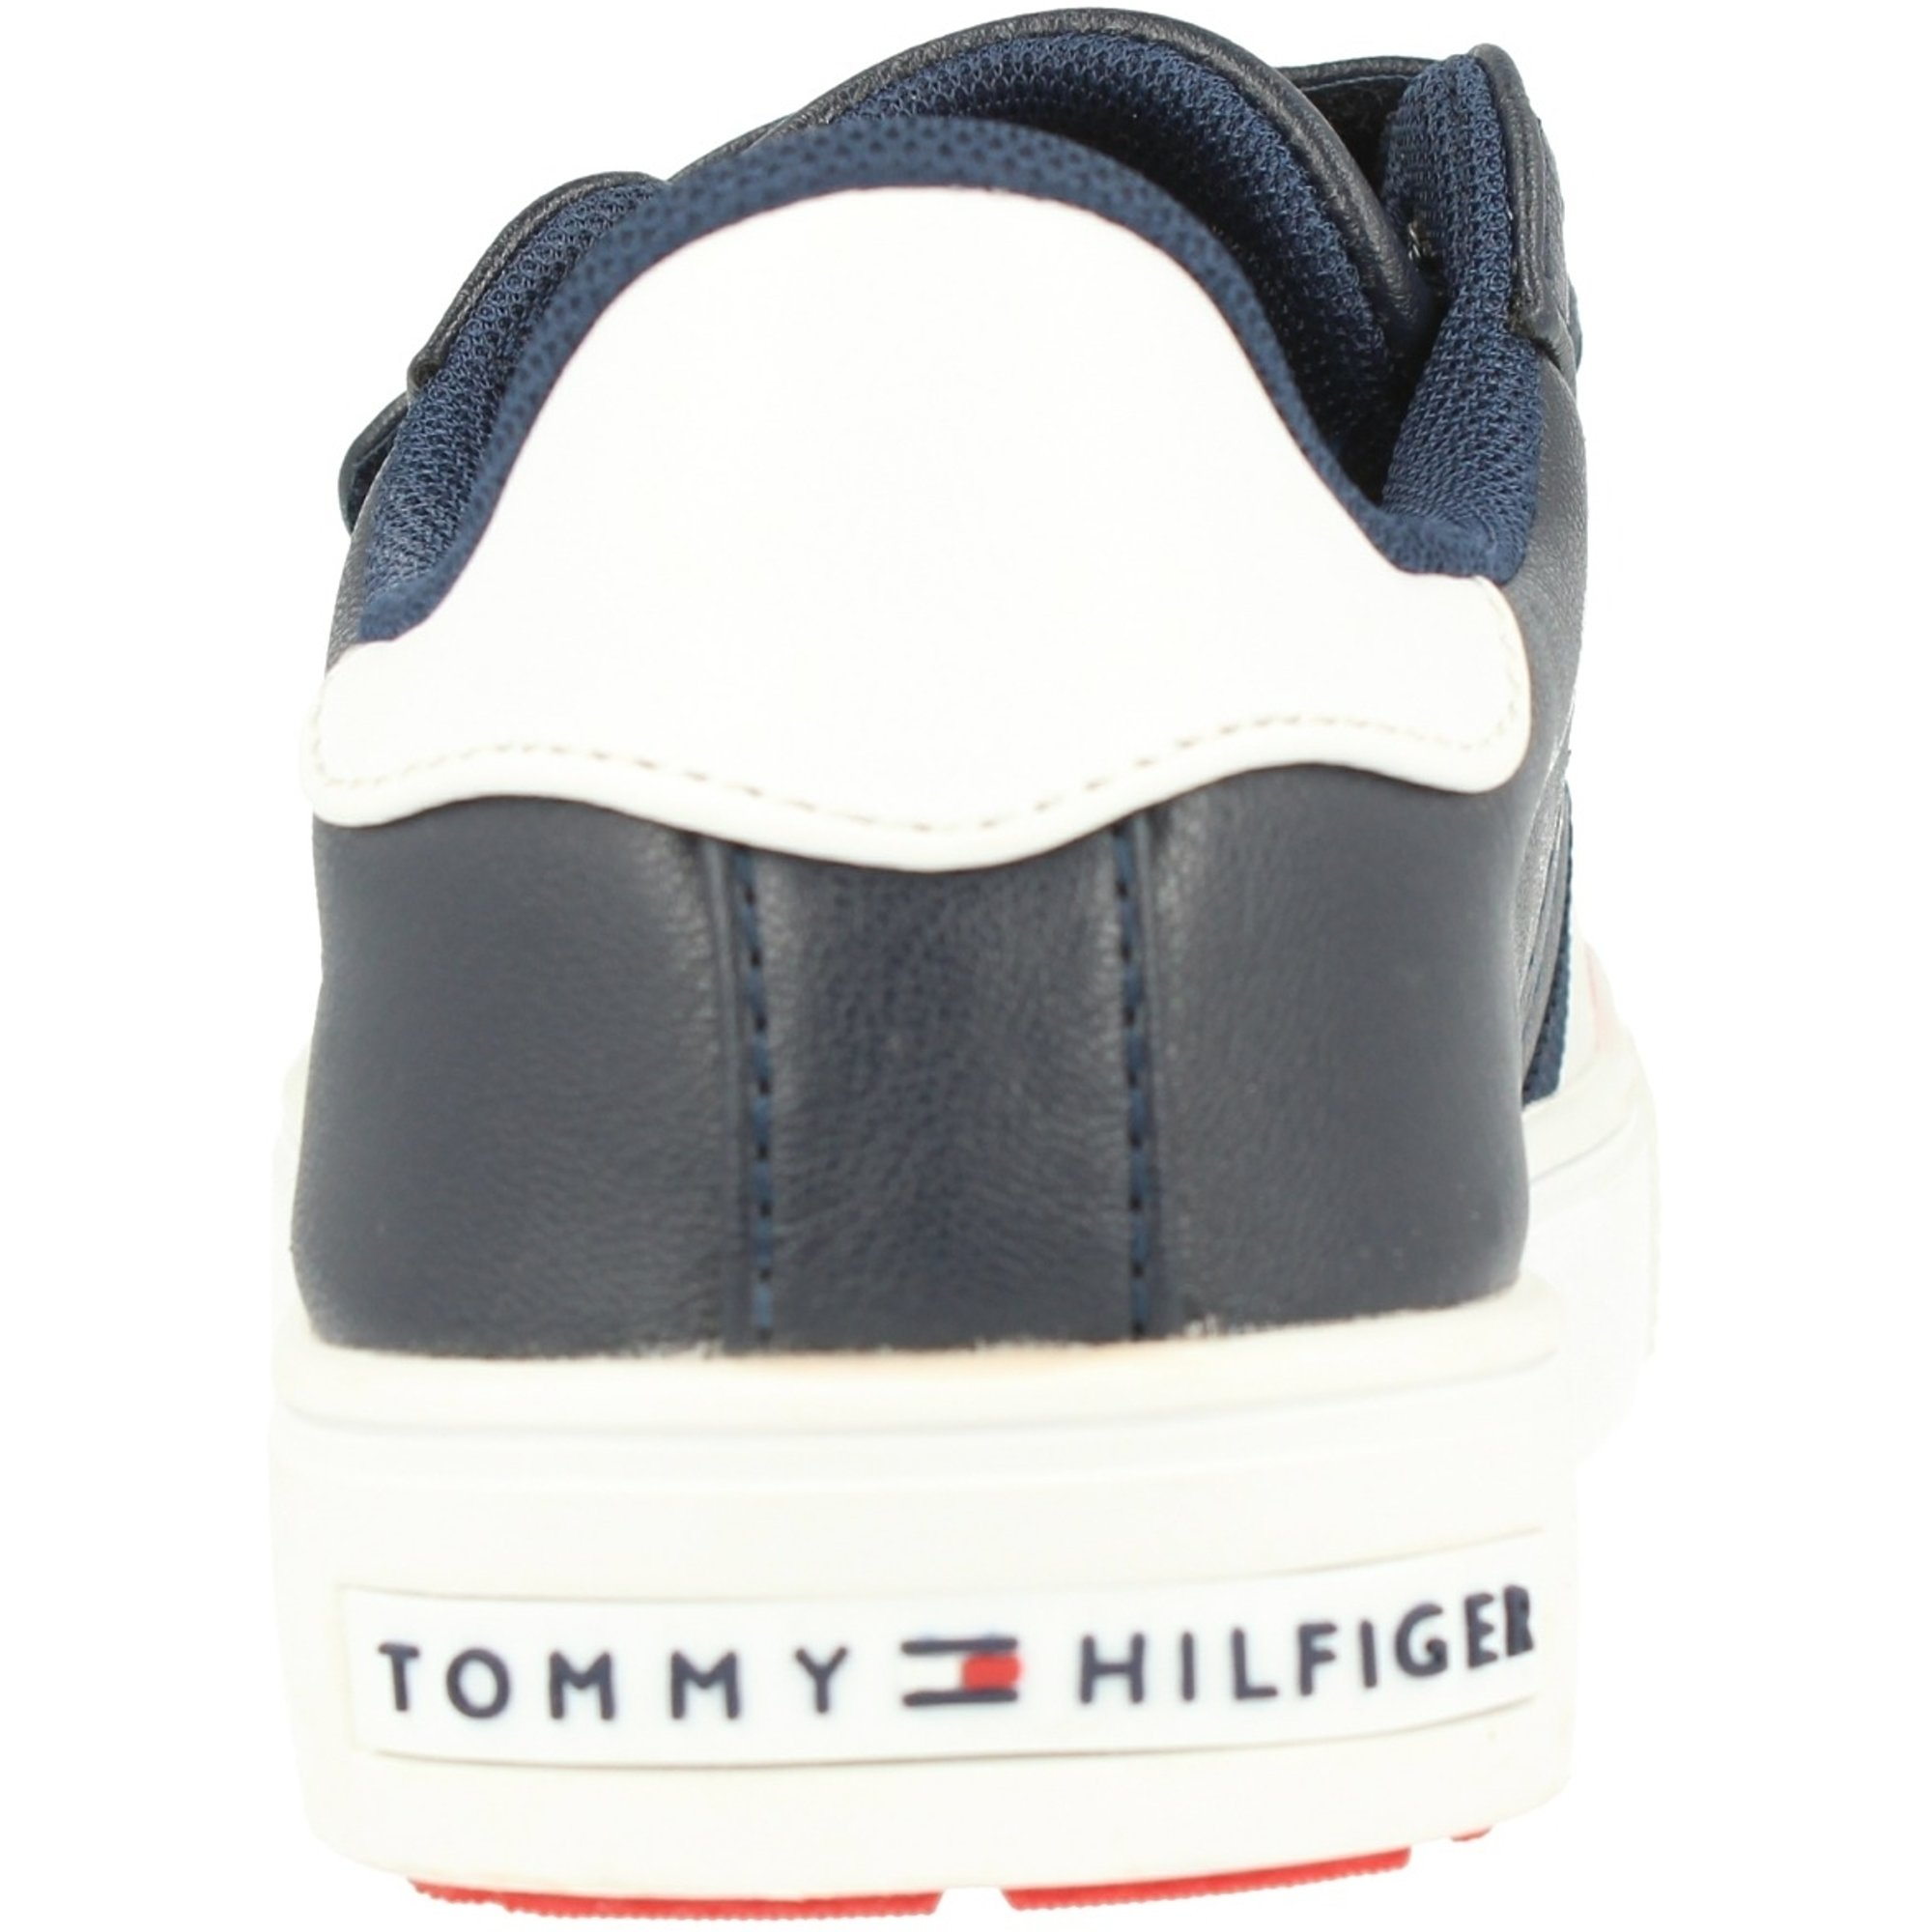 Tommy Hilfiger T3B4-30321-0621 Blue/White Eco Leather Youth